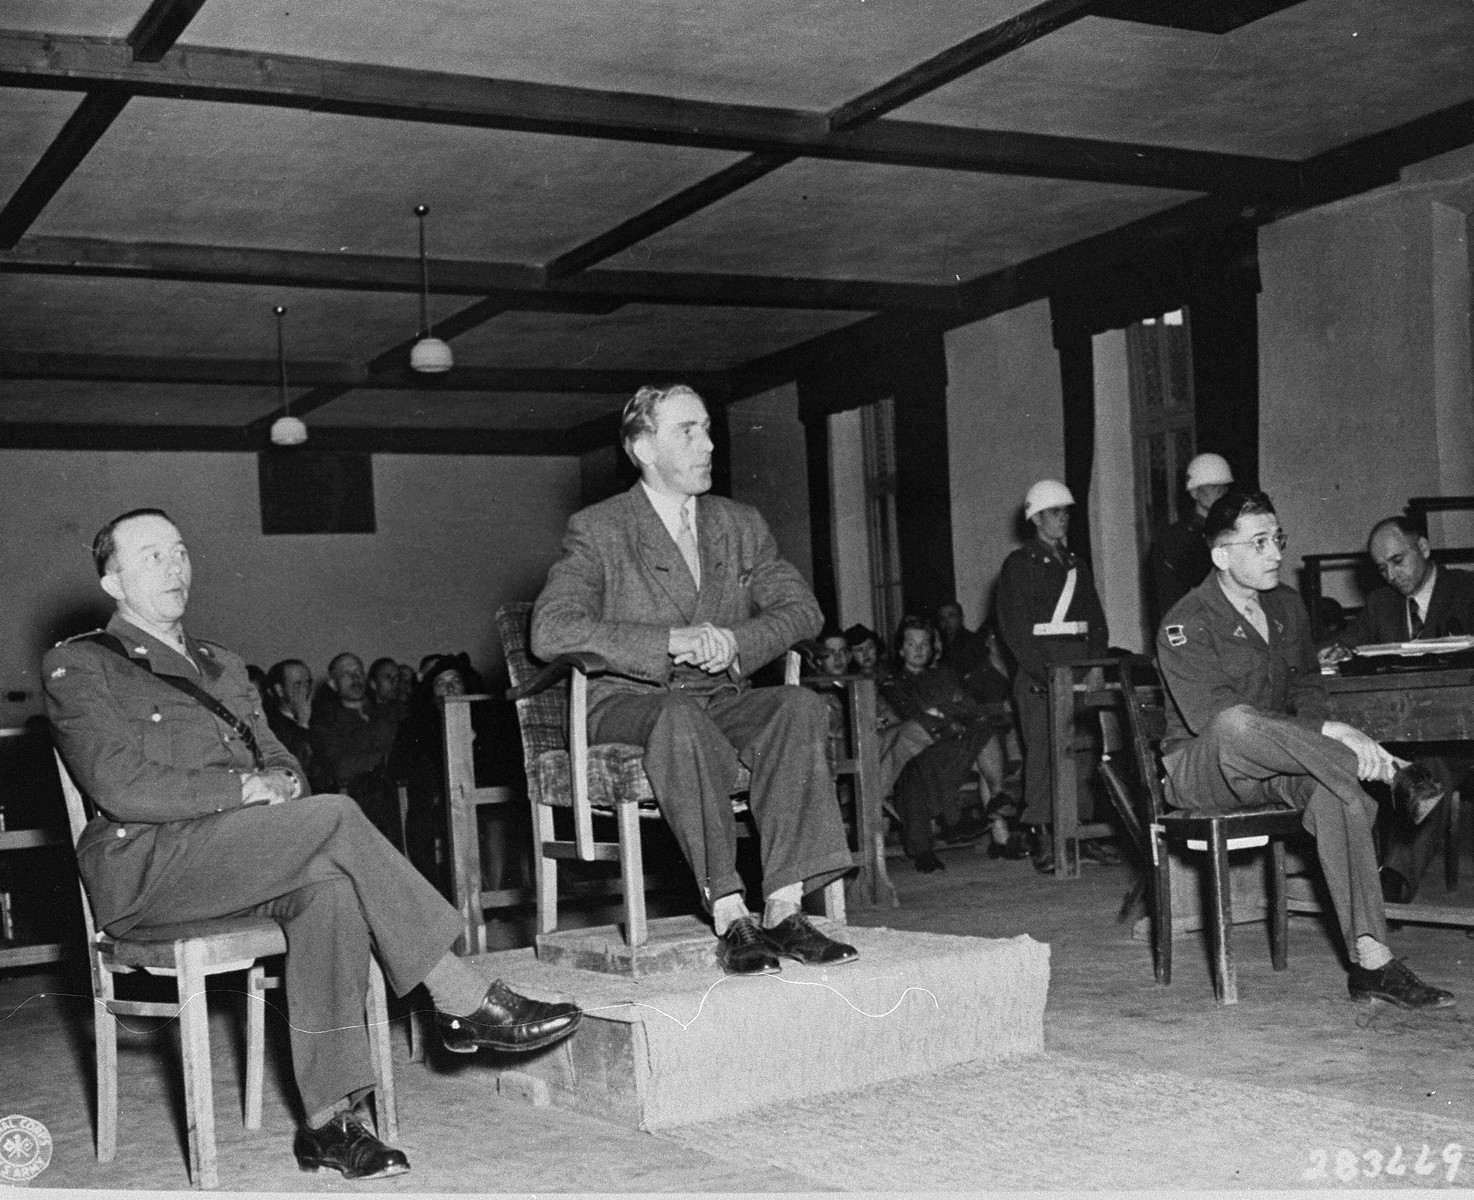 Aksel Frydenabjerg, a member of the Criminal Intelligence Division in Denmark, testifies at the trial of former camp personnel and prisoners from Buchenwald.  To his left is Captain Regner P. Mortensen, a Danish liaison officer and interpreter, and on the right is Herbet Rosenstock, another interpreter.